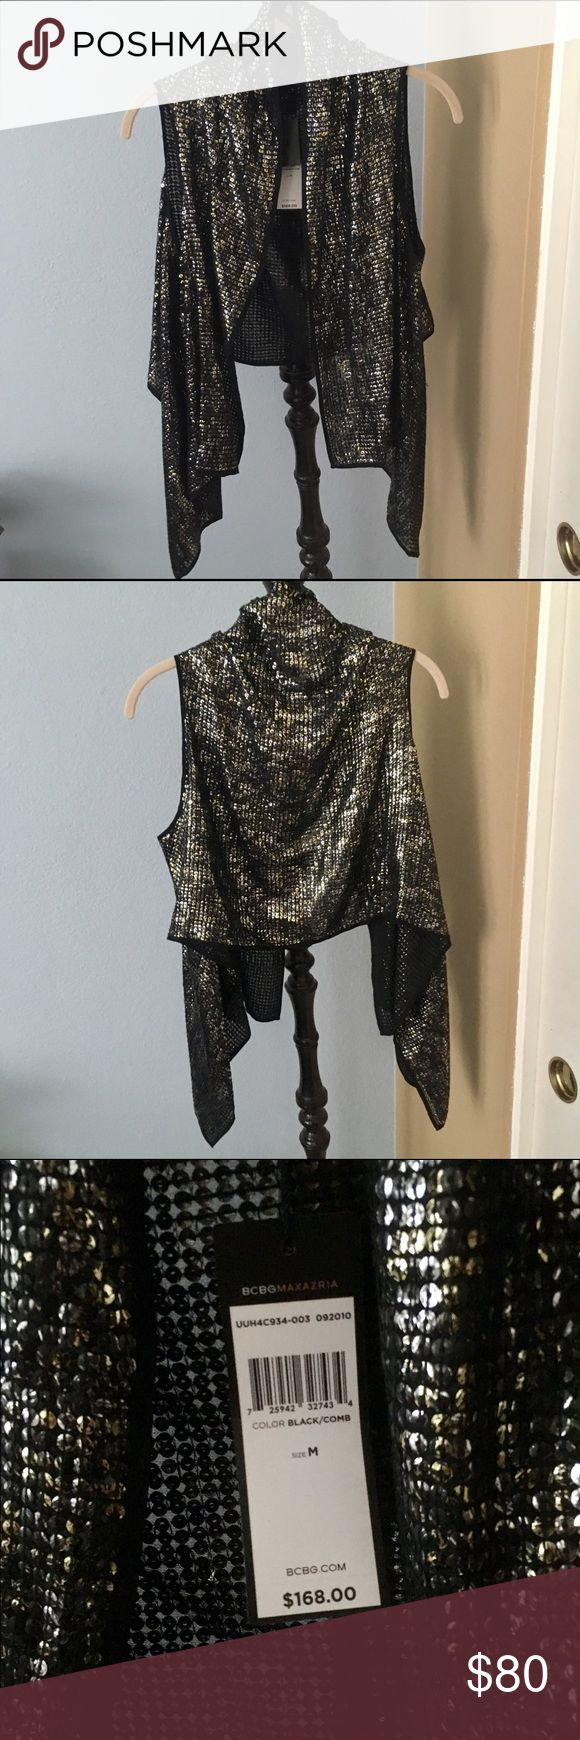 BCBGMAXAZRIA Black/gold combo silk and sequin vest BCBGMAXAZRIA Black/gold combo silk and sequin vest. New with tags BCBGMaxAzria Jackets & Coats Vests